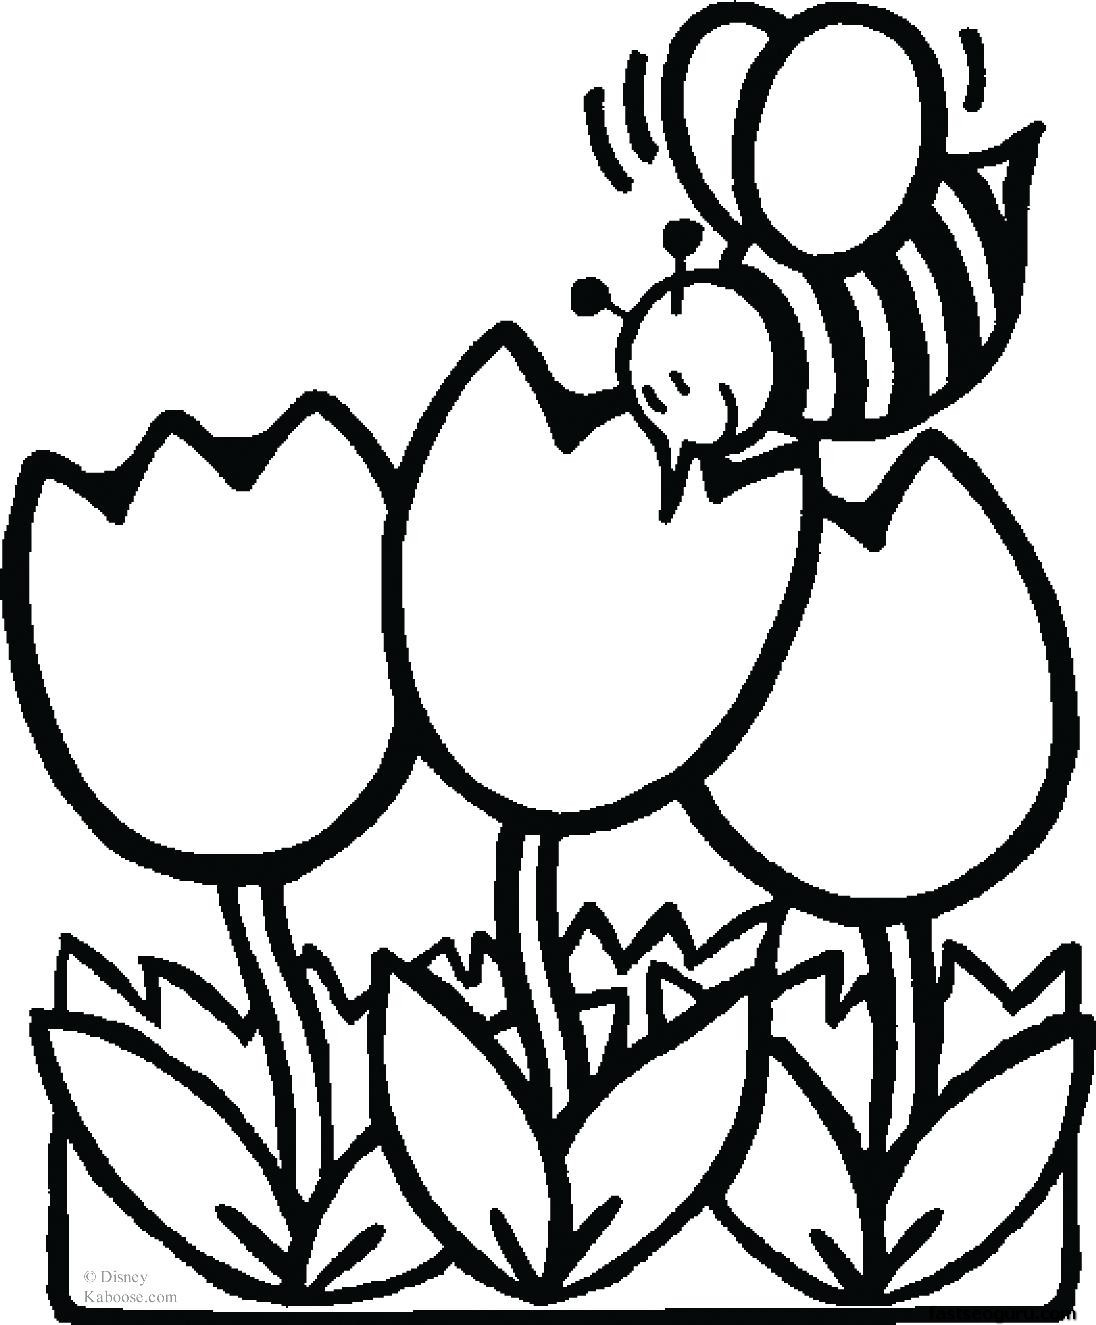 1096x1325 Coloring Pages Tulips 397 Free Printable Coloring Pages